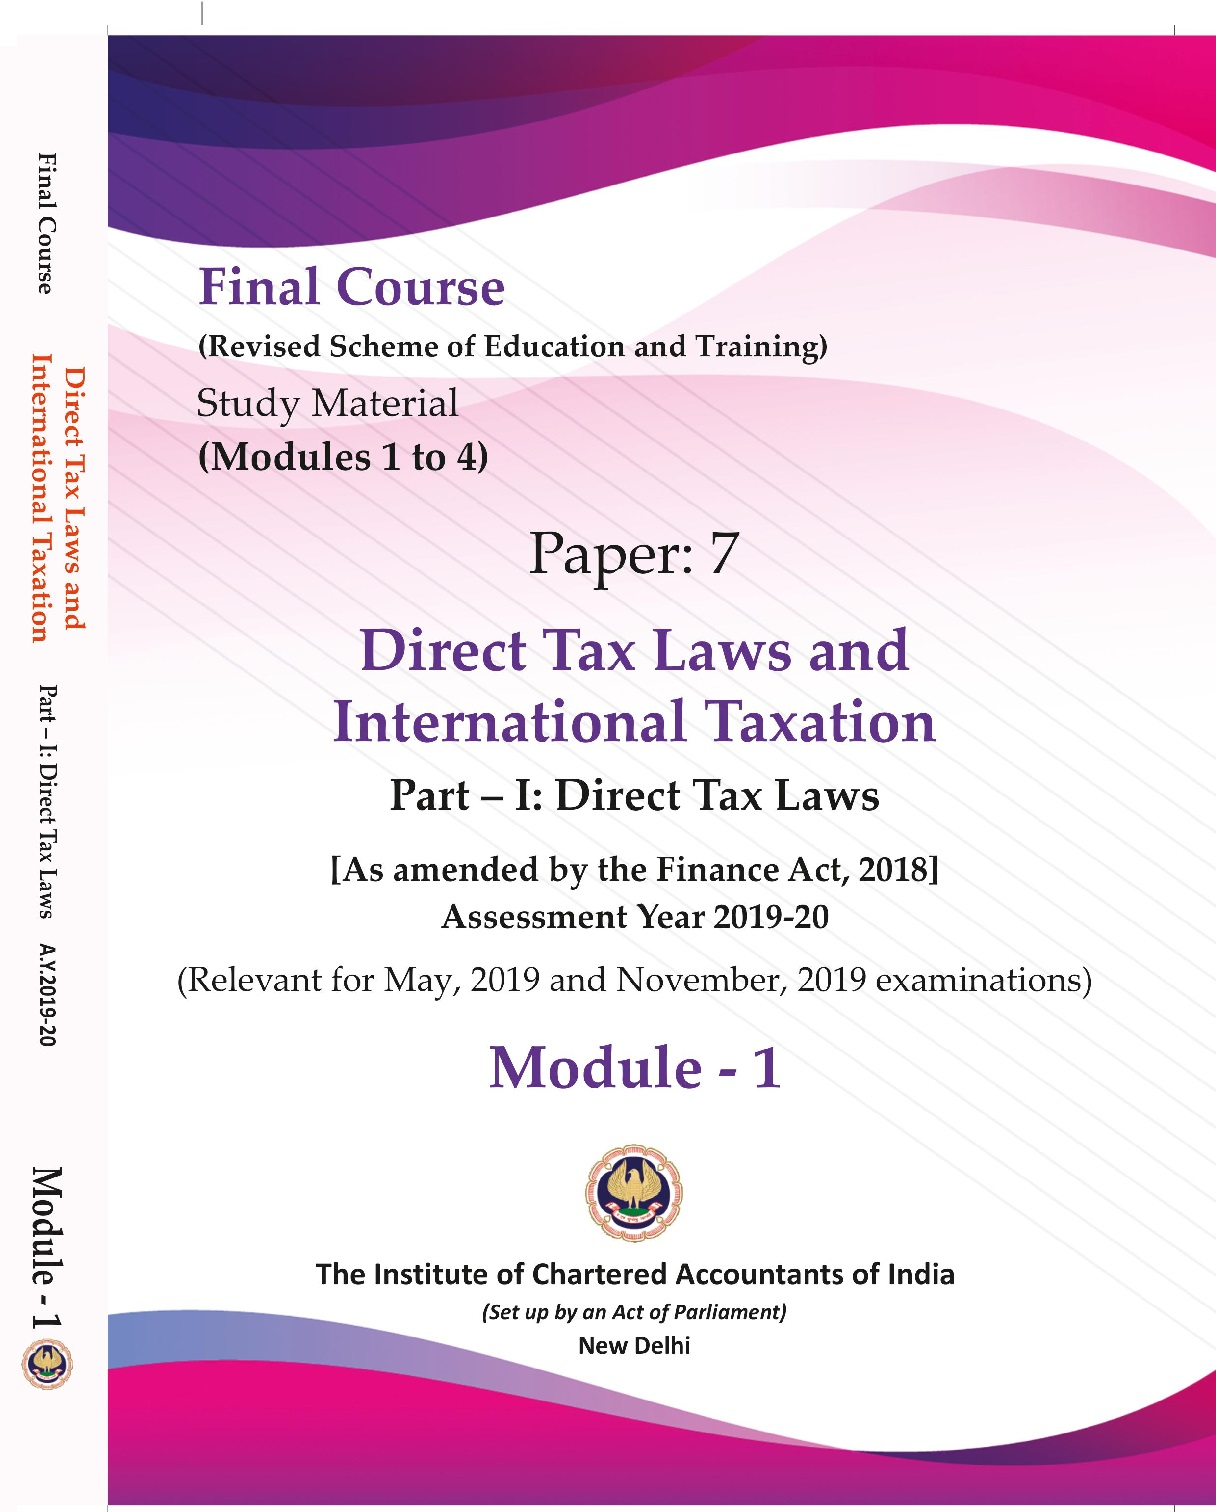 Final Course (Revised Scheme) Study Material - Paper: 7 - Direct Tax Laws and International Taxation (Module 1 to 4) (September, 2018)